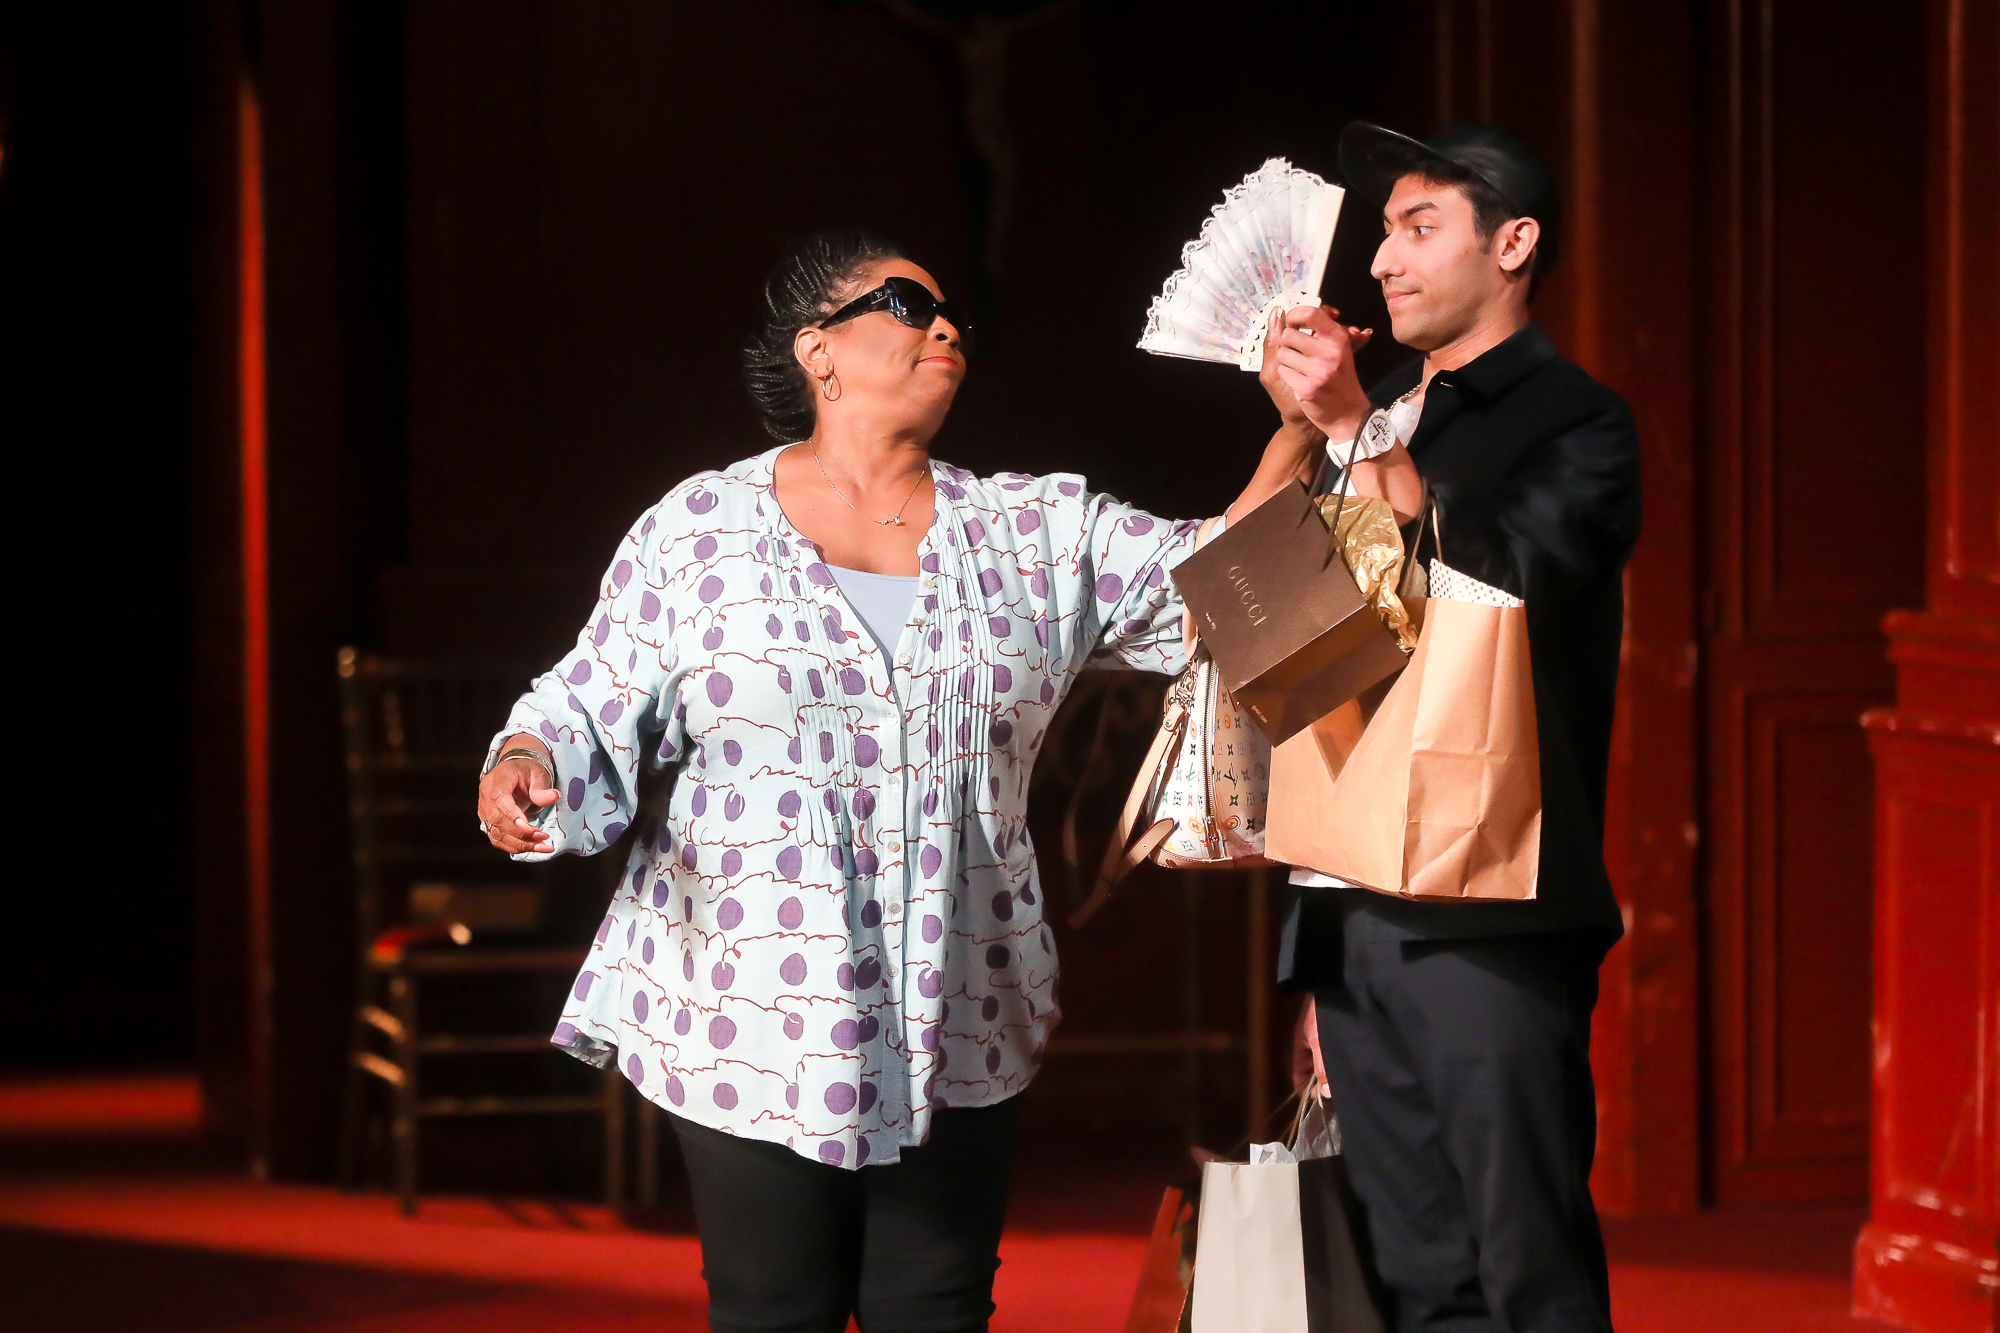 Photo of E. Faye Butler as Nurse and Joe Mucciolo as Peter in Romeo & Juliet by Tony Powell.